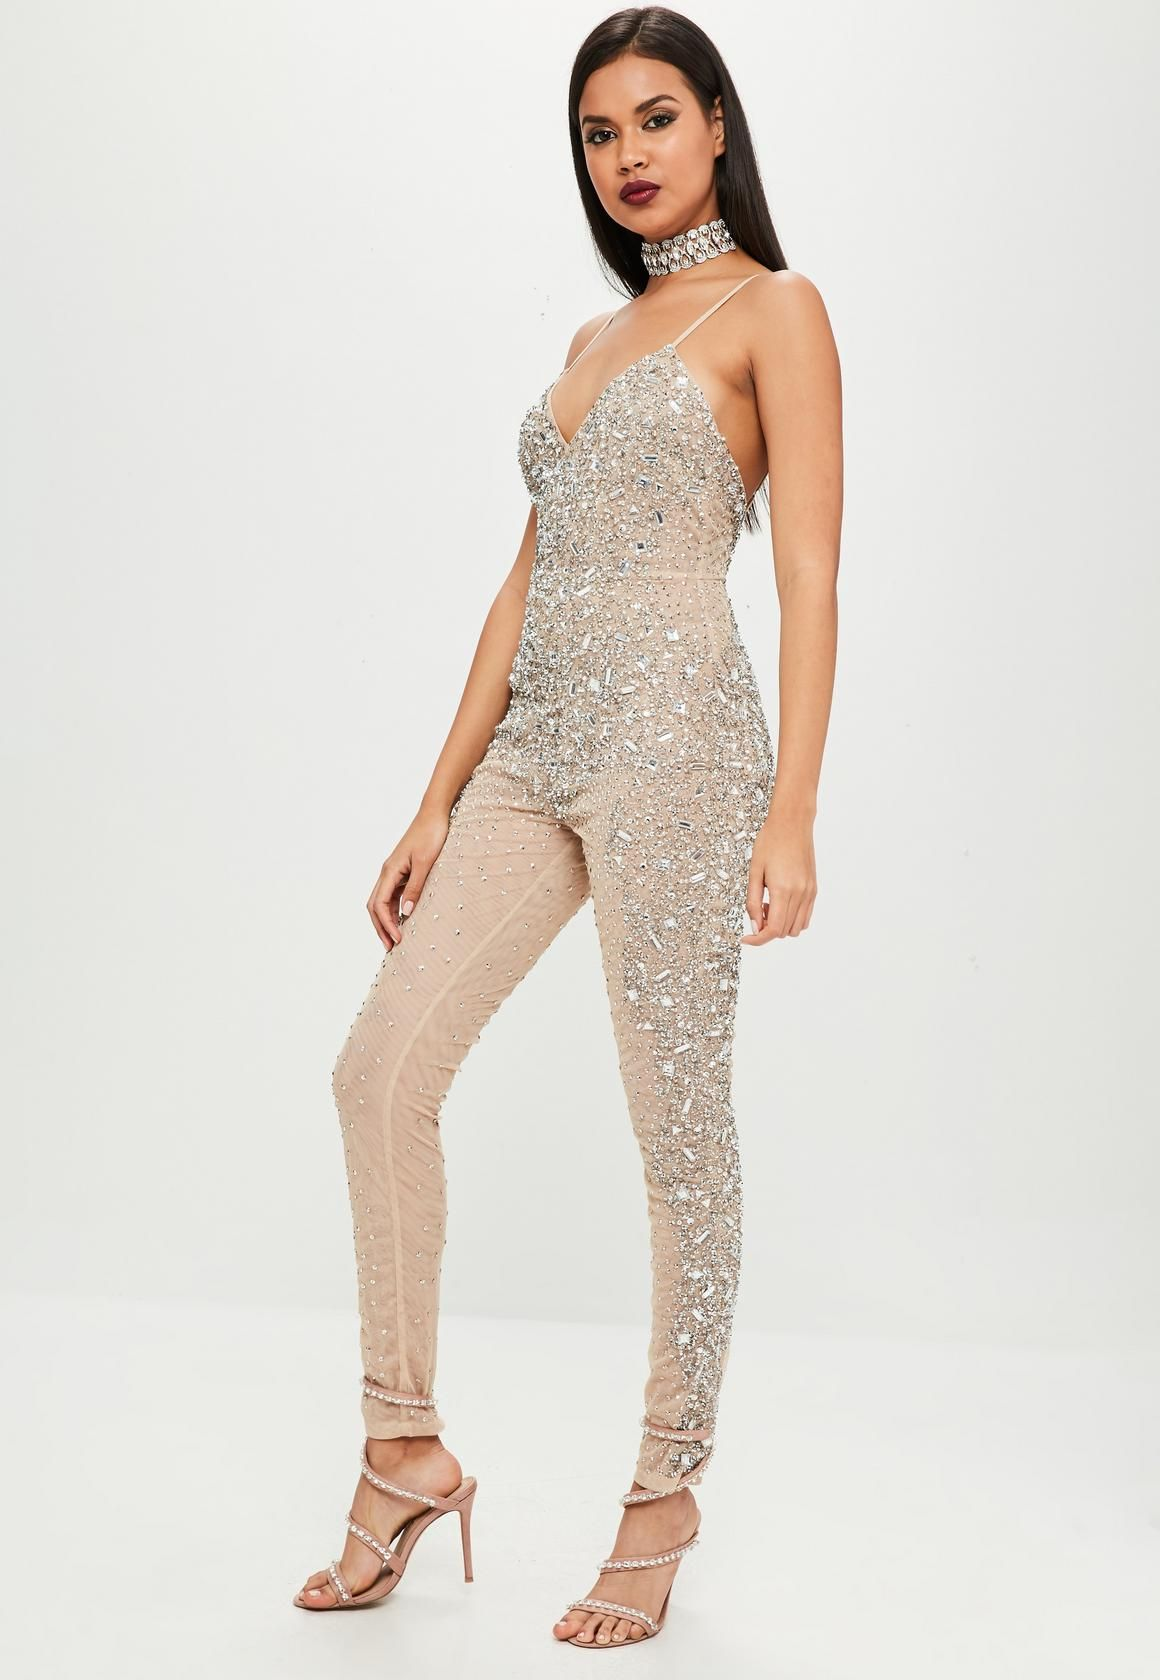 a9febdb337b6 Missguided - Carli Bybel x Missguided Nude Embellished Jumpsuit this  jumpsuit features a nude hue,